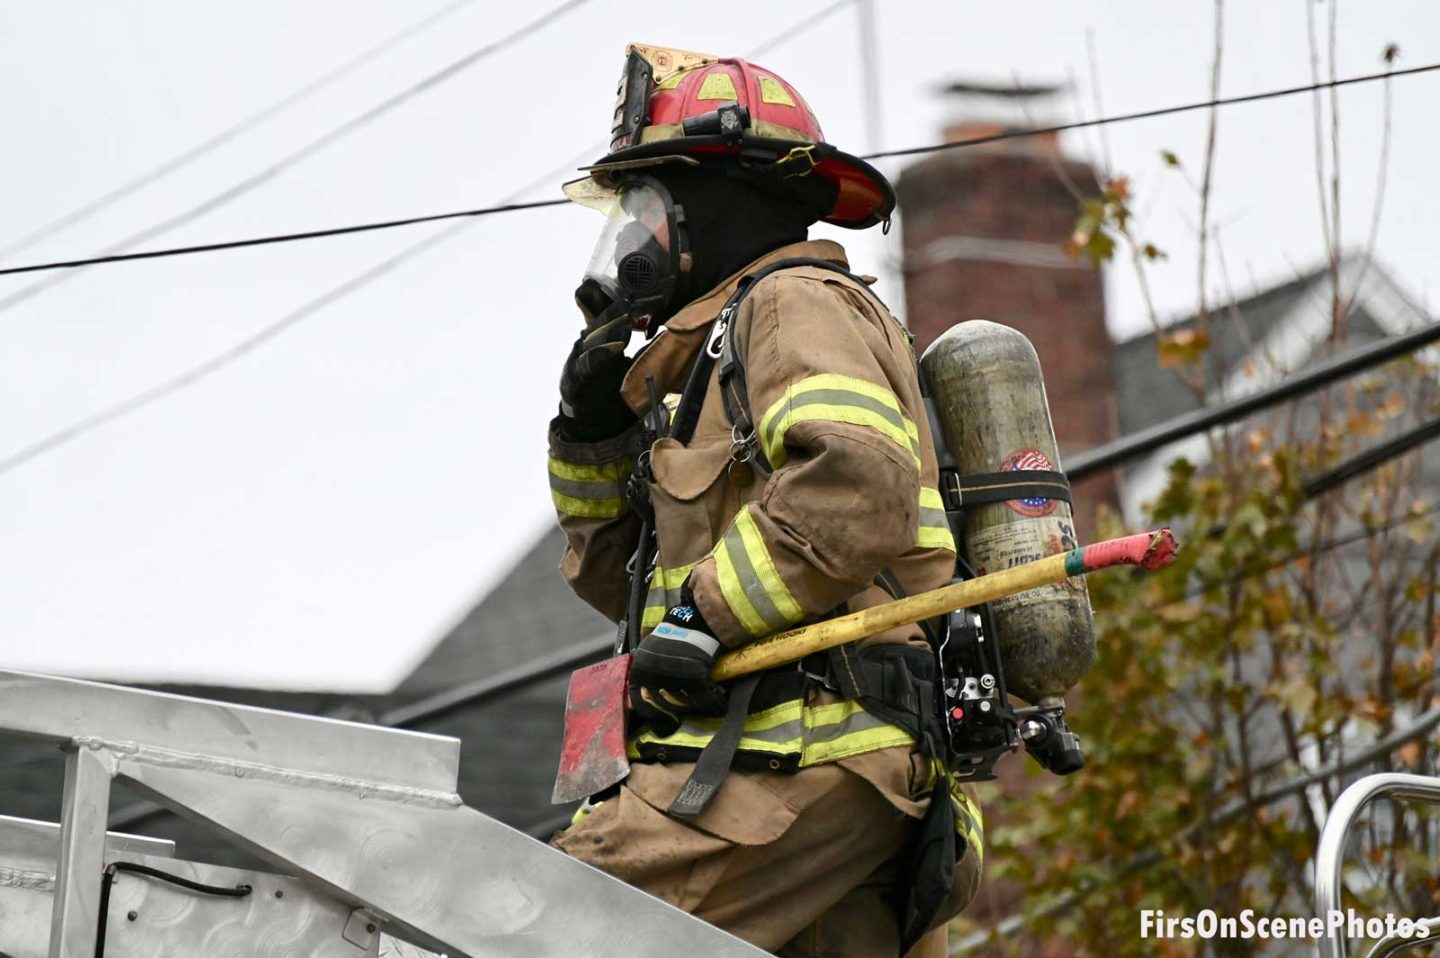 A firefighter in full PPE and SCBA with an ax